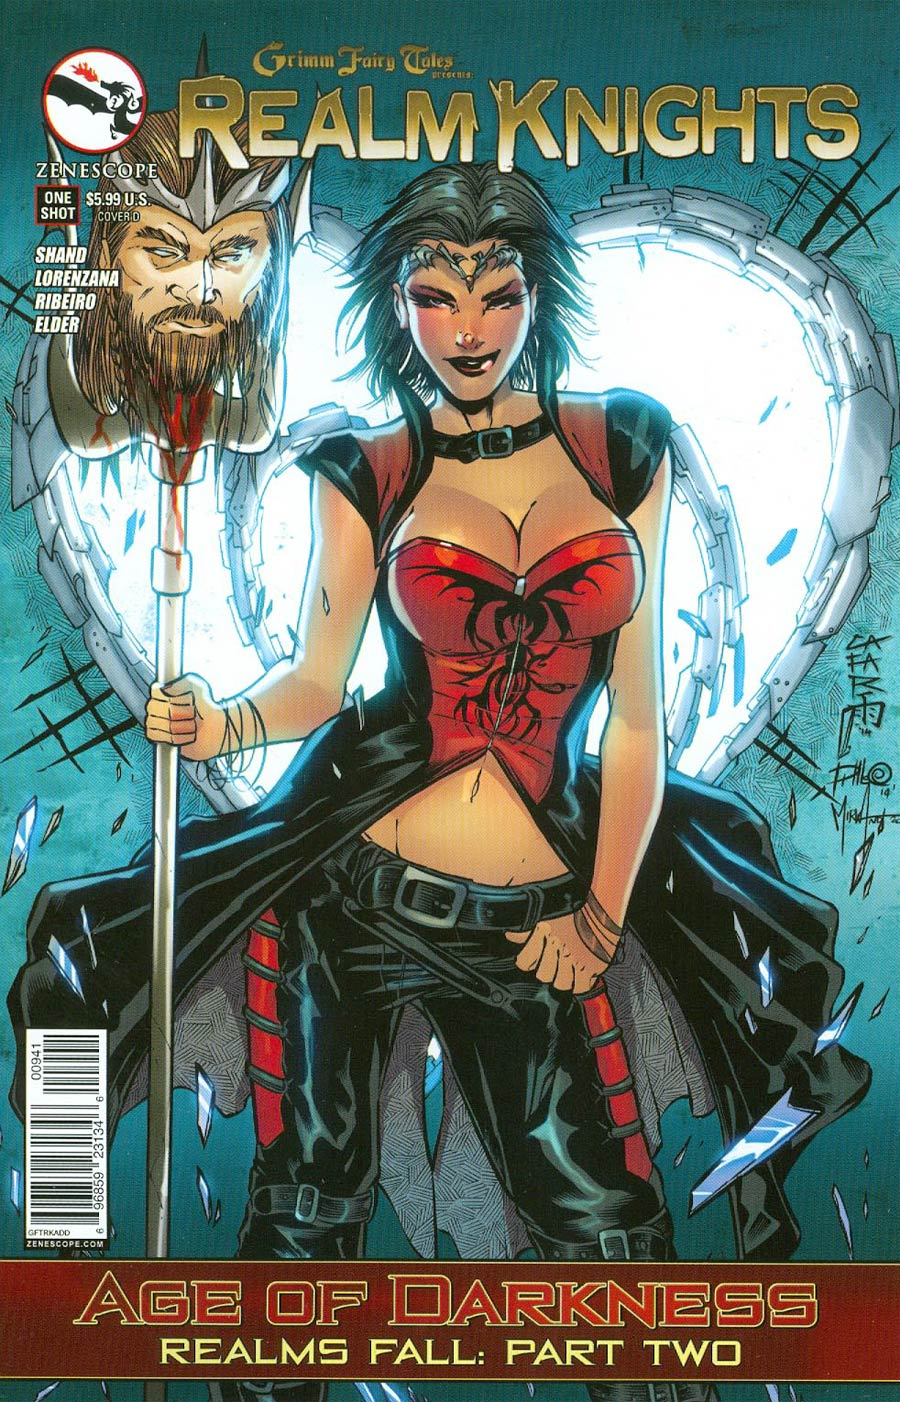 Grimm Fairy Tales Presents Realm Knights Age Of Darkness One Shot Cover D Giuseppe Cafaro